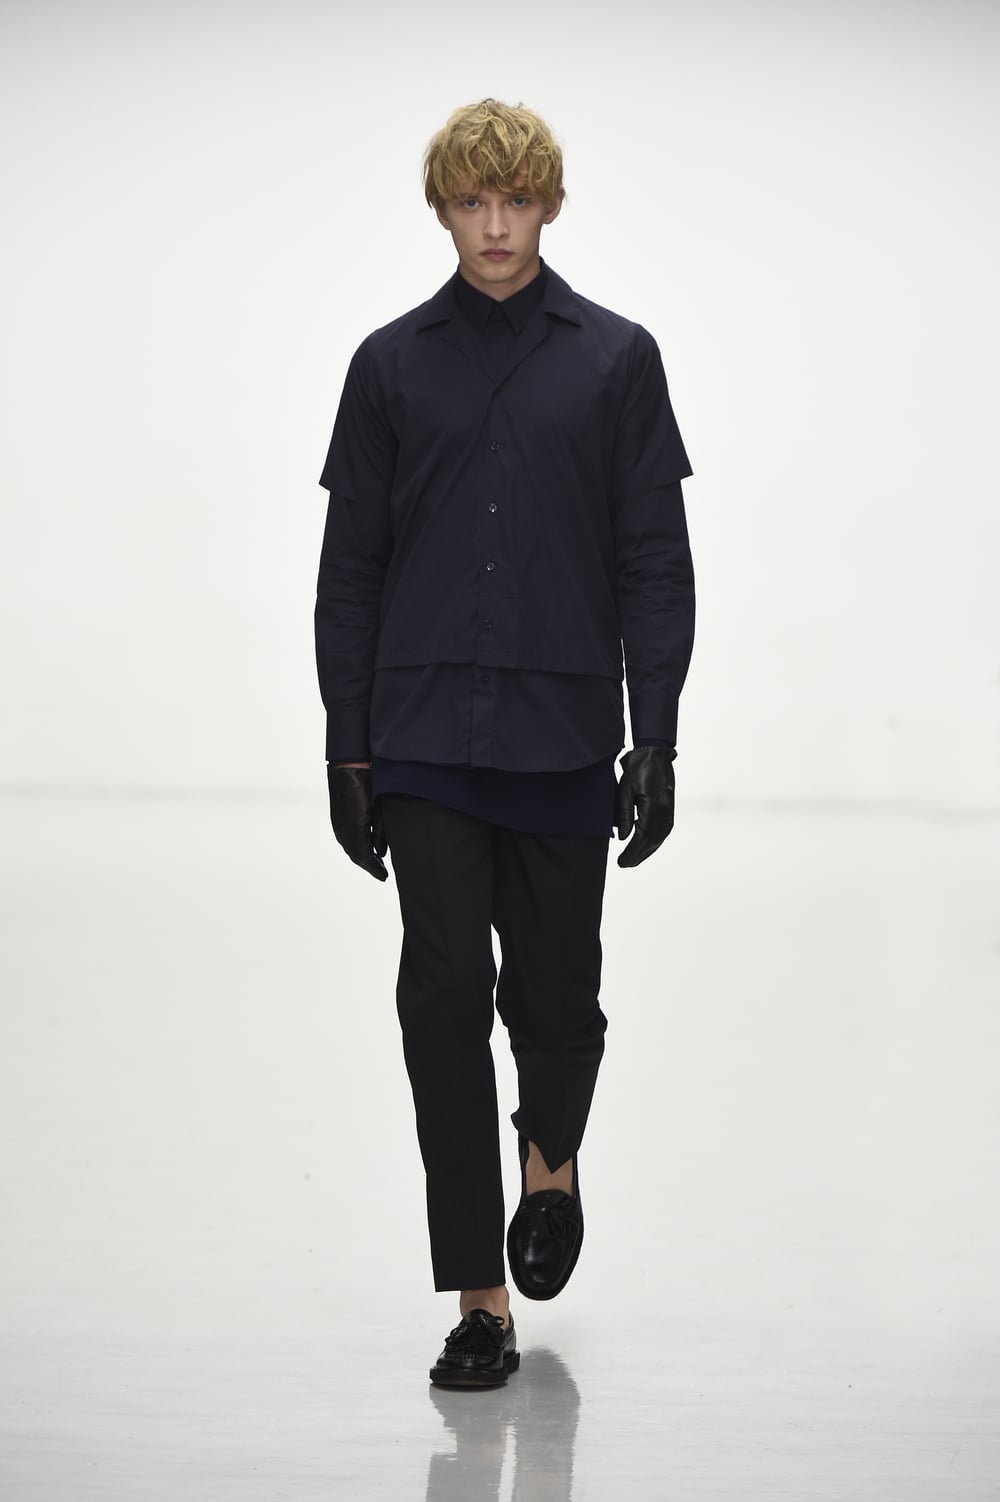 Matthew Miller AW16 at London Collections Men.